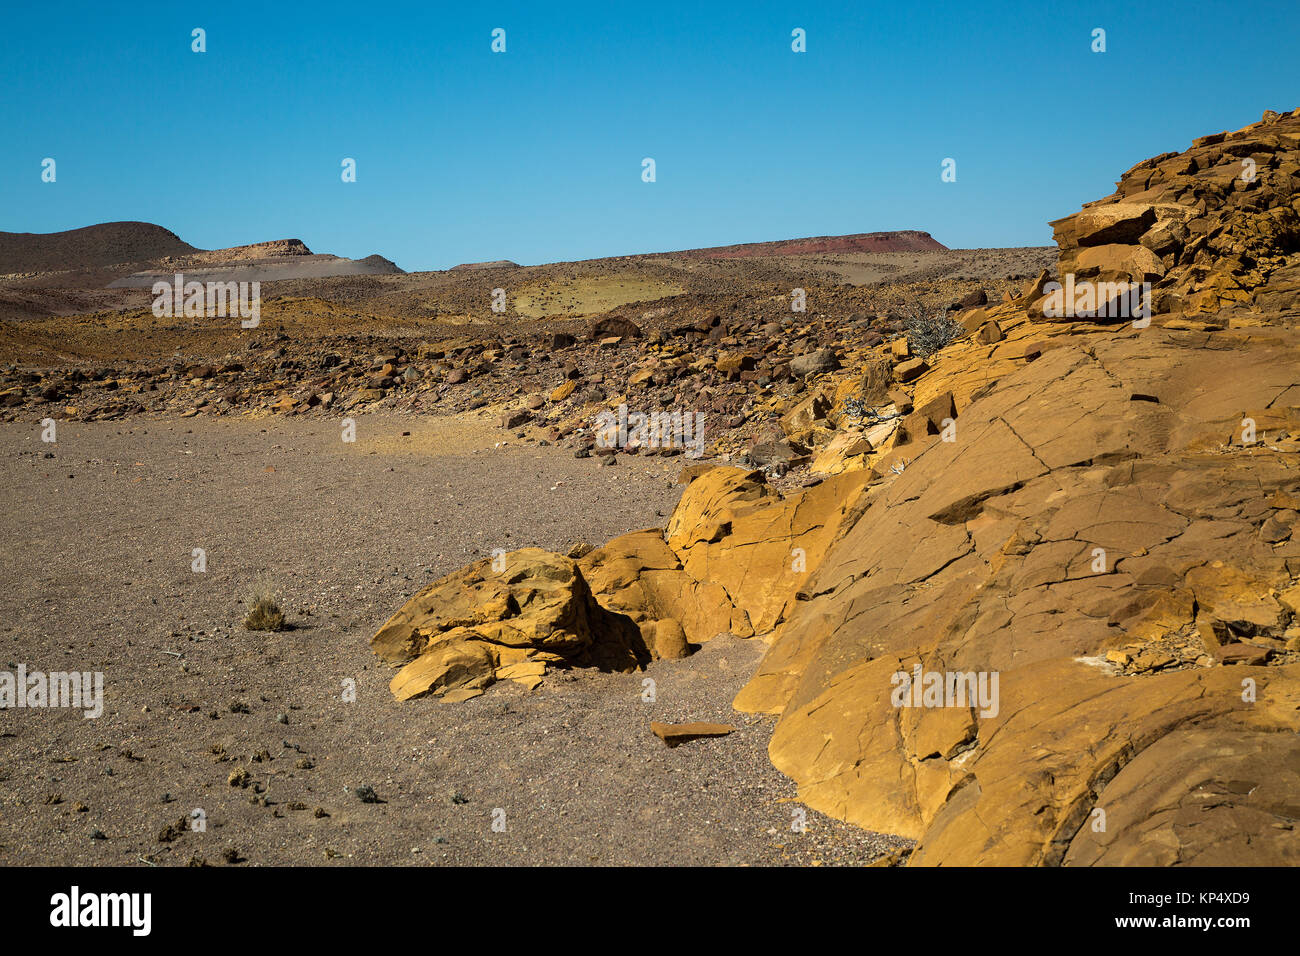 landscape with rock formation in damaraland Namibia - Stock Image